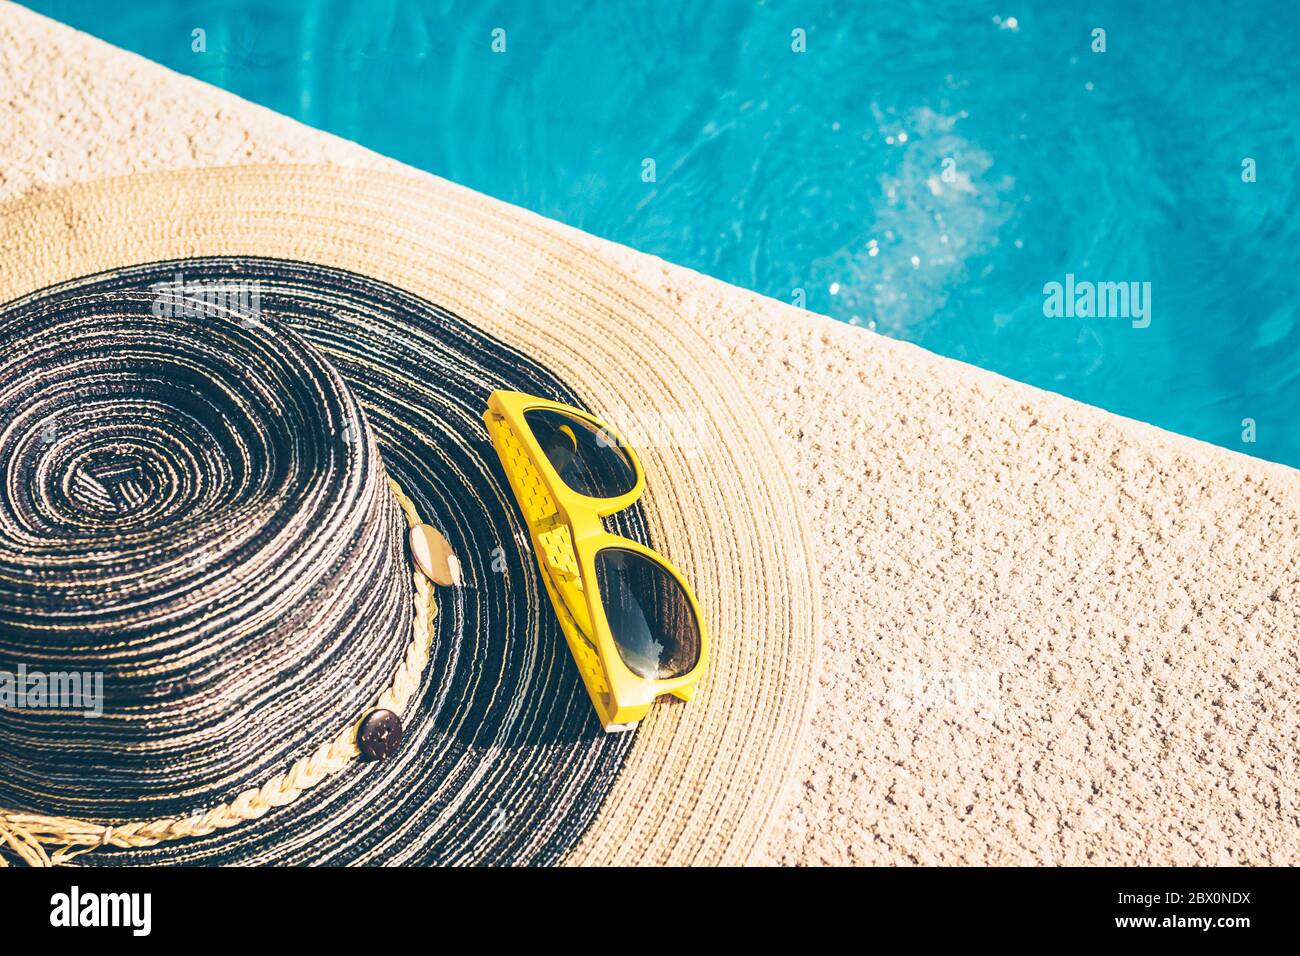 Sunglasses on the edge of the pool - the holiday season - rest and recovery Stock Photo